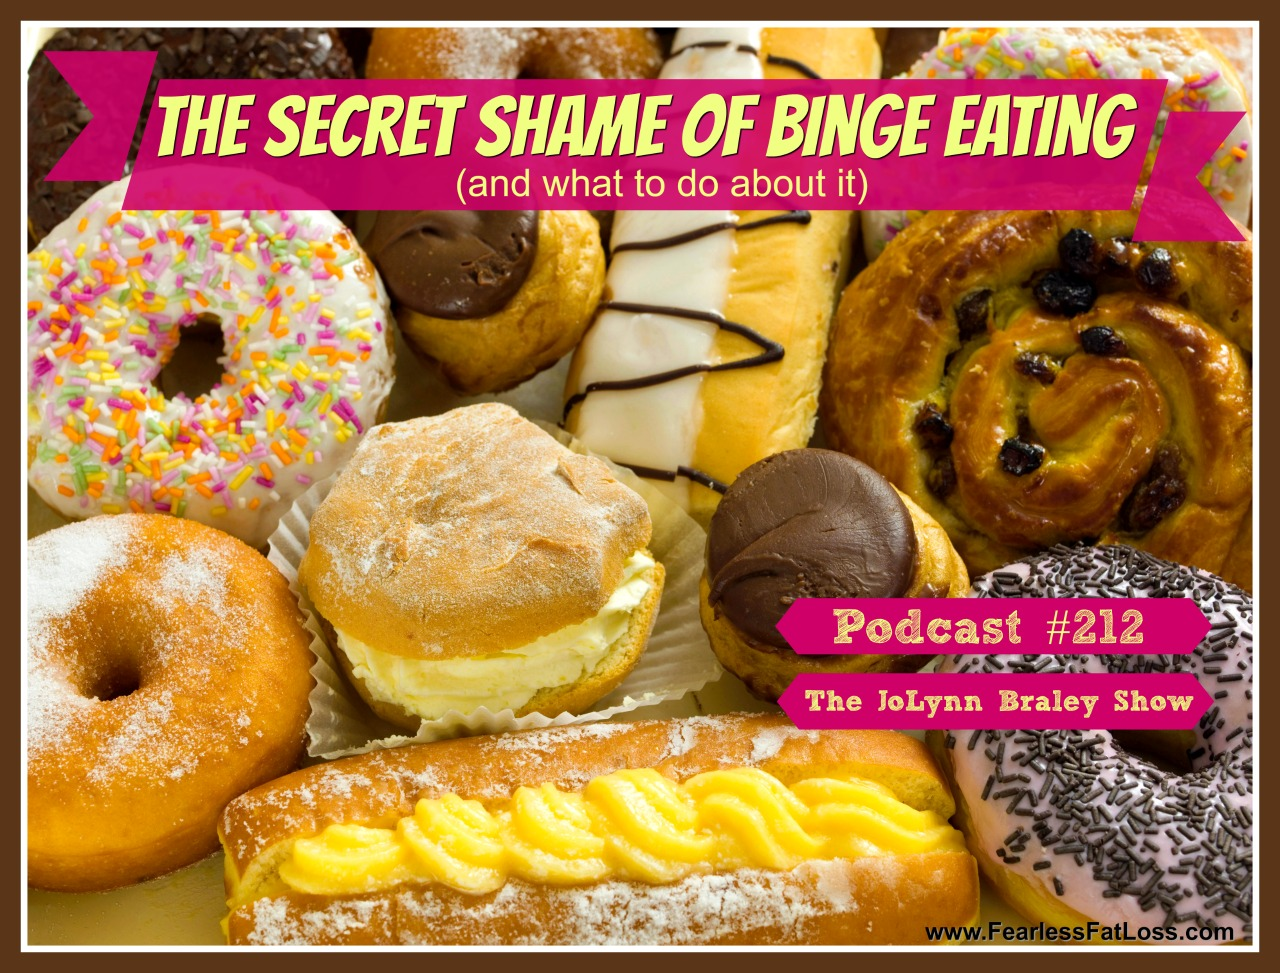 The Secret Shame Of Binge Eating (and how to start breaking free of binge eating!) | FearlessFatLoss.com | Permanent Weight Loss coach JoLynn Braley